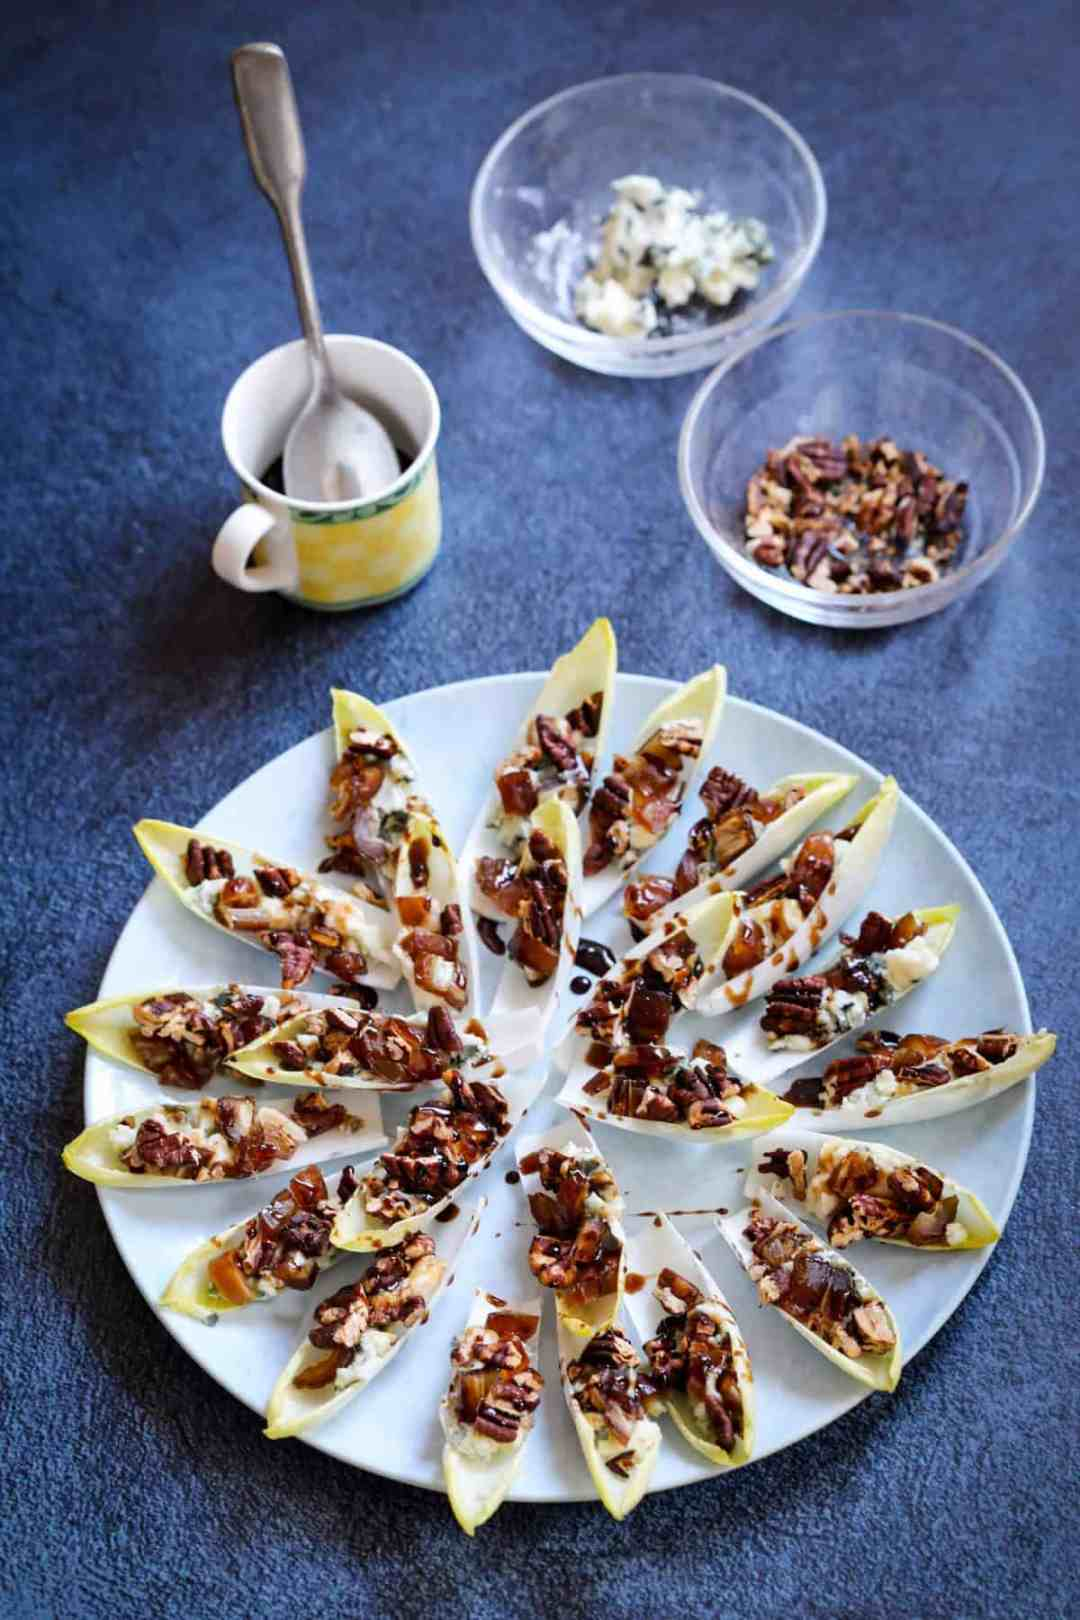 Endive appetizer with blue cheese and pecans with bowls of blue cheese and pecans and balsamic syrup